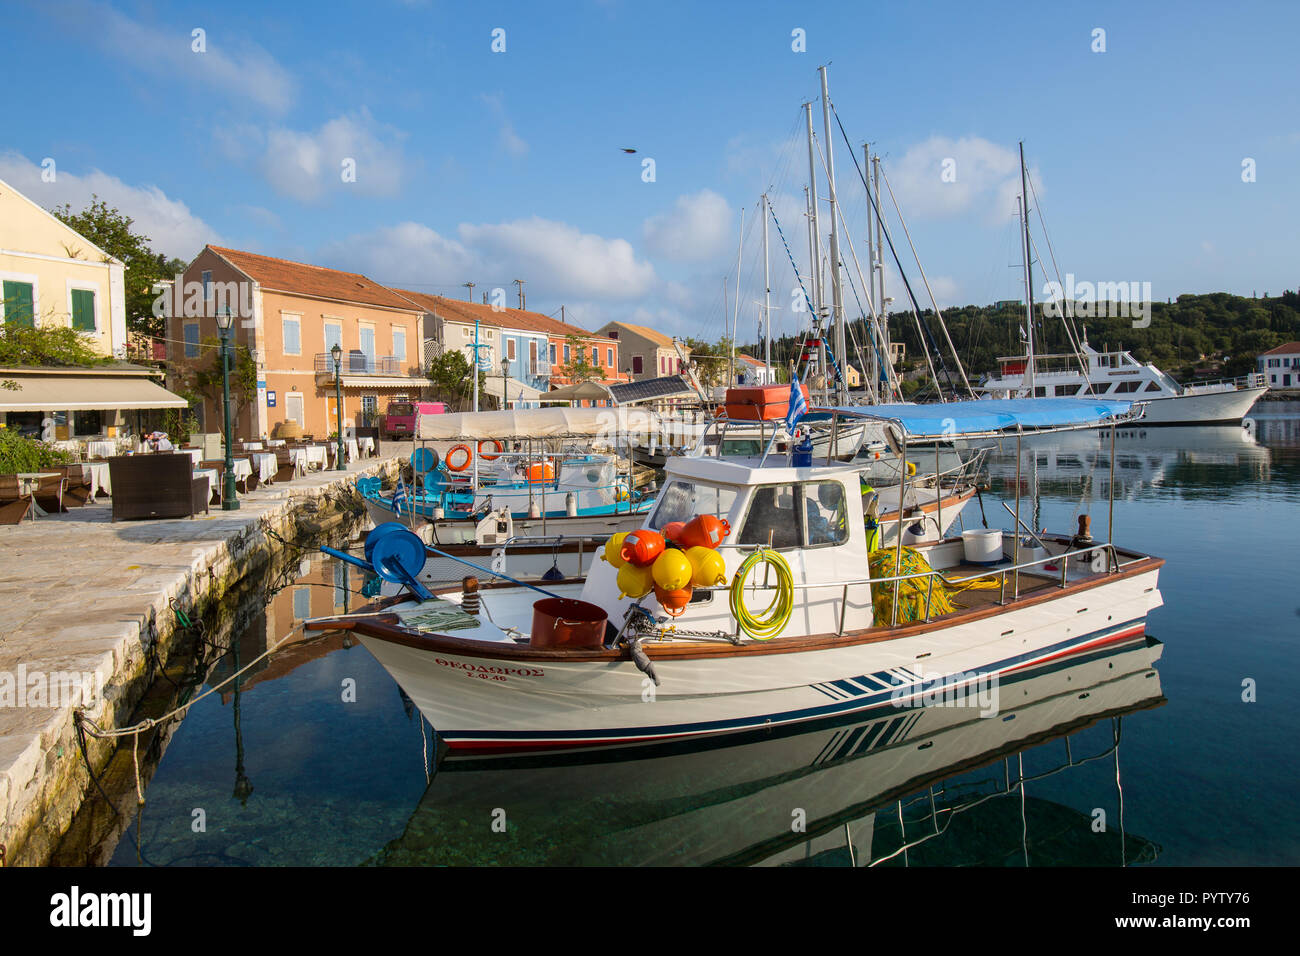 Fishing boat at the harbour - Stock Image